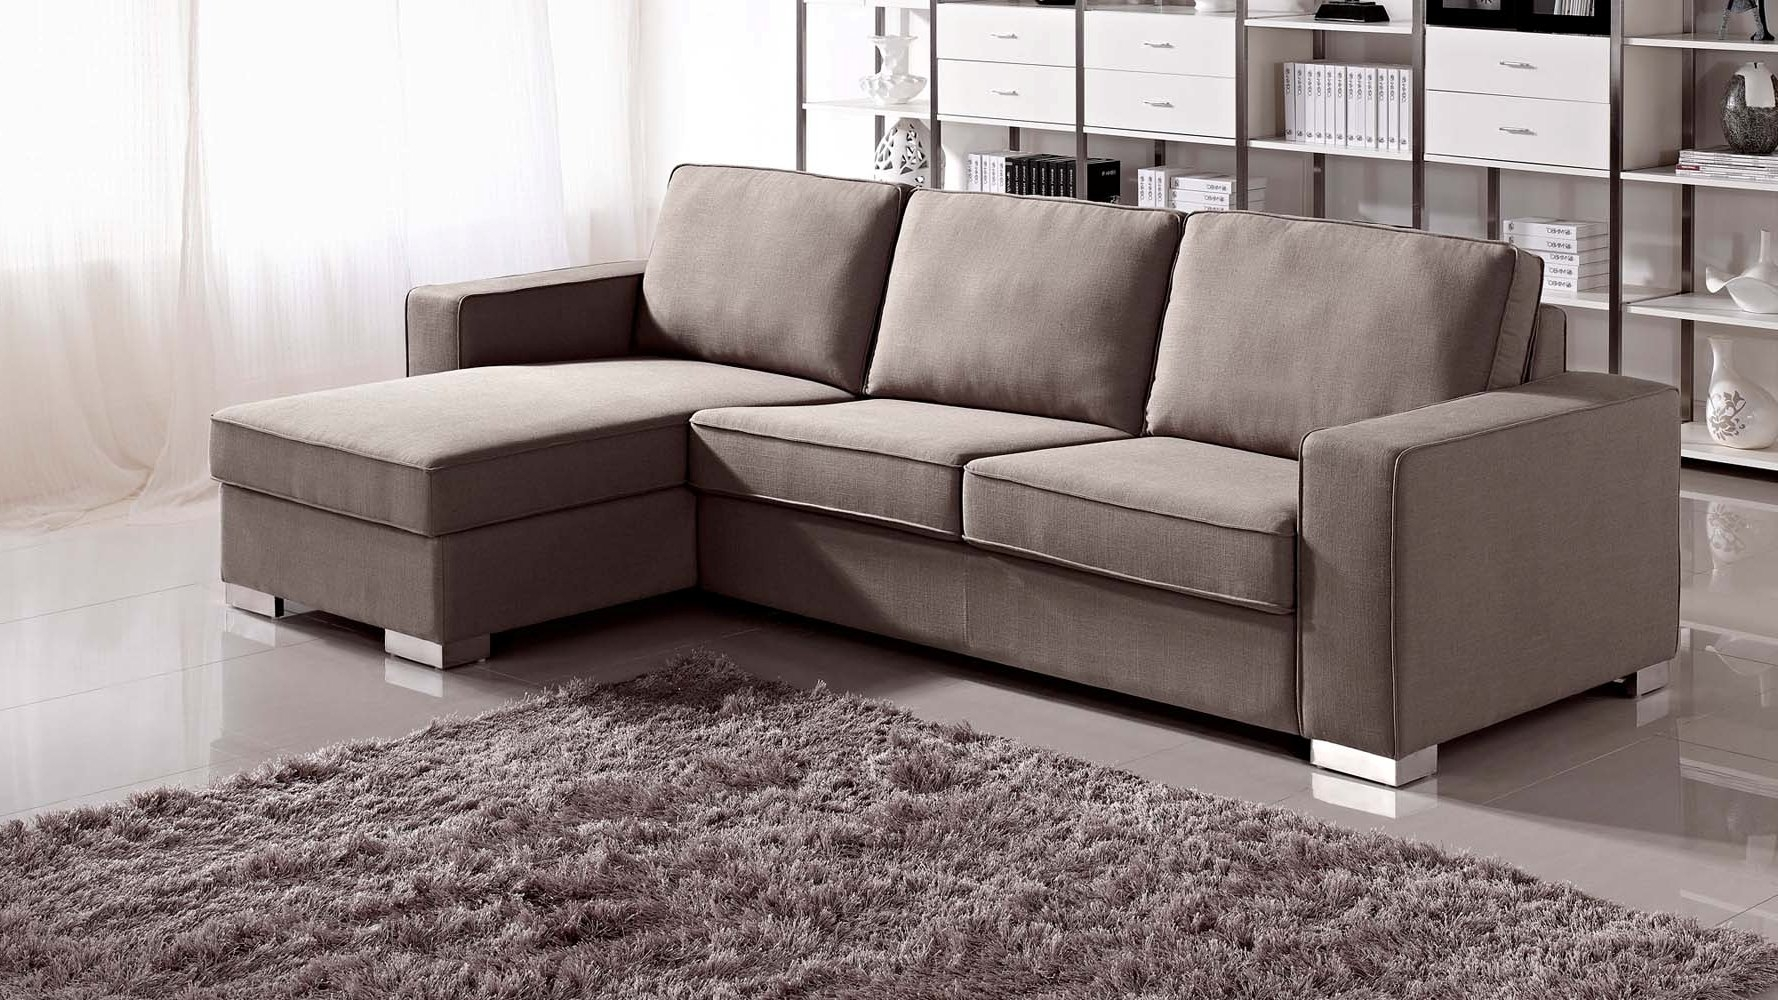 Sleeper Sofa Sale Cool Sleeper Sales Allomediaco In Cool Sleeper Sofas (Image 12 of 15)